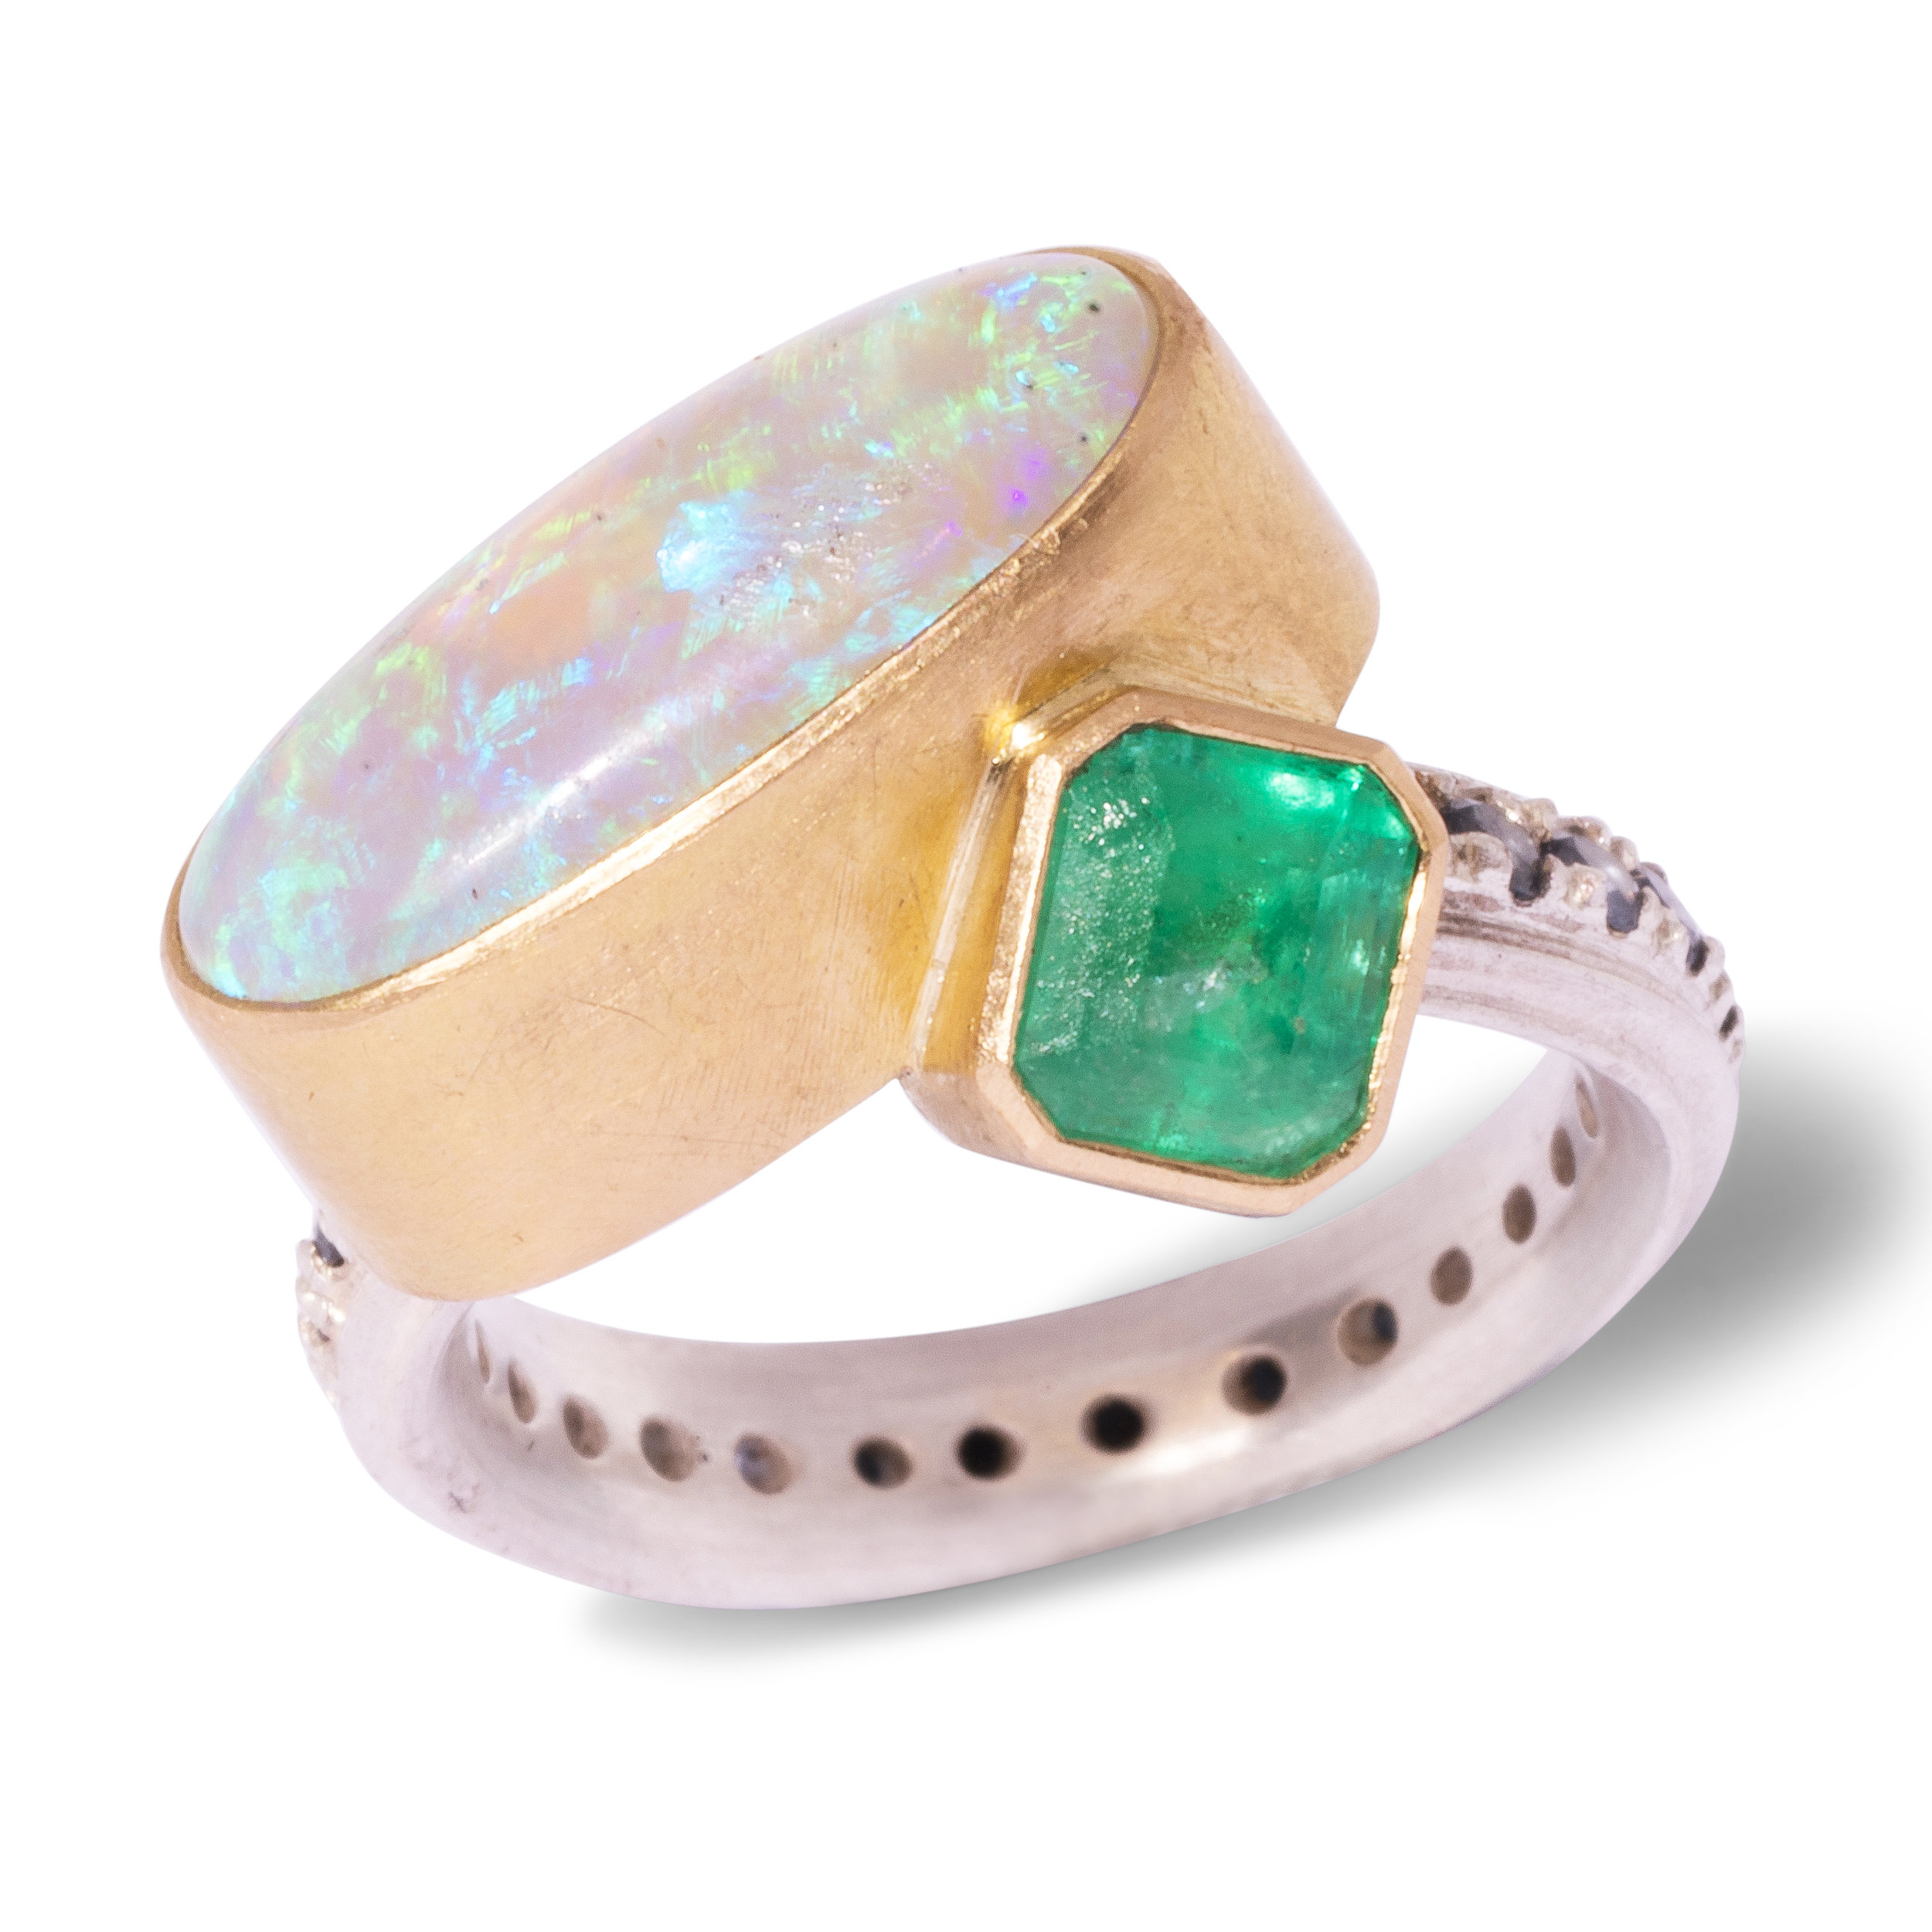 Chris Boland Silver, 18ct gold Emerald Ring